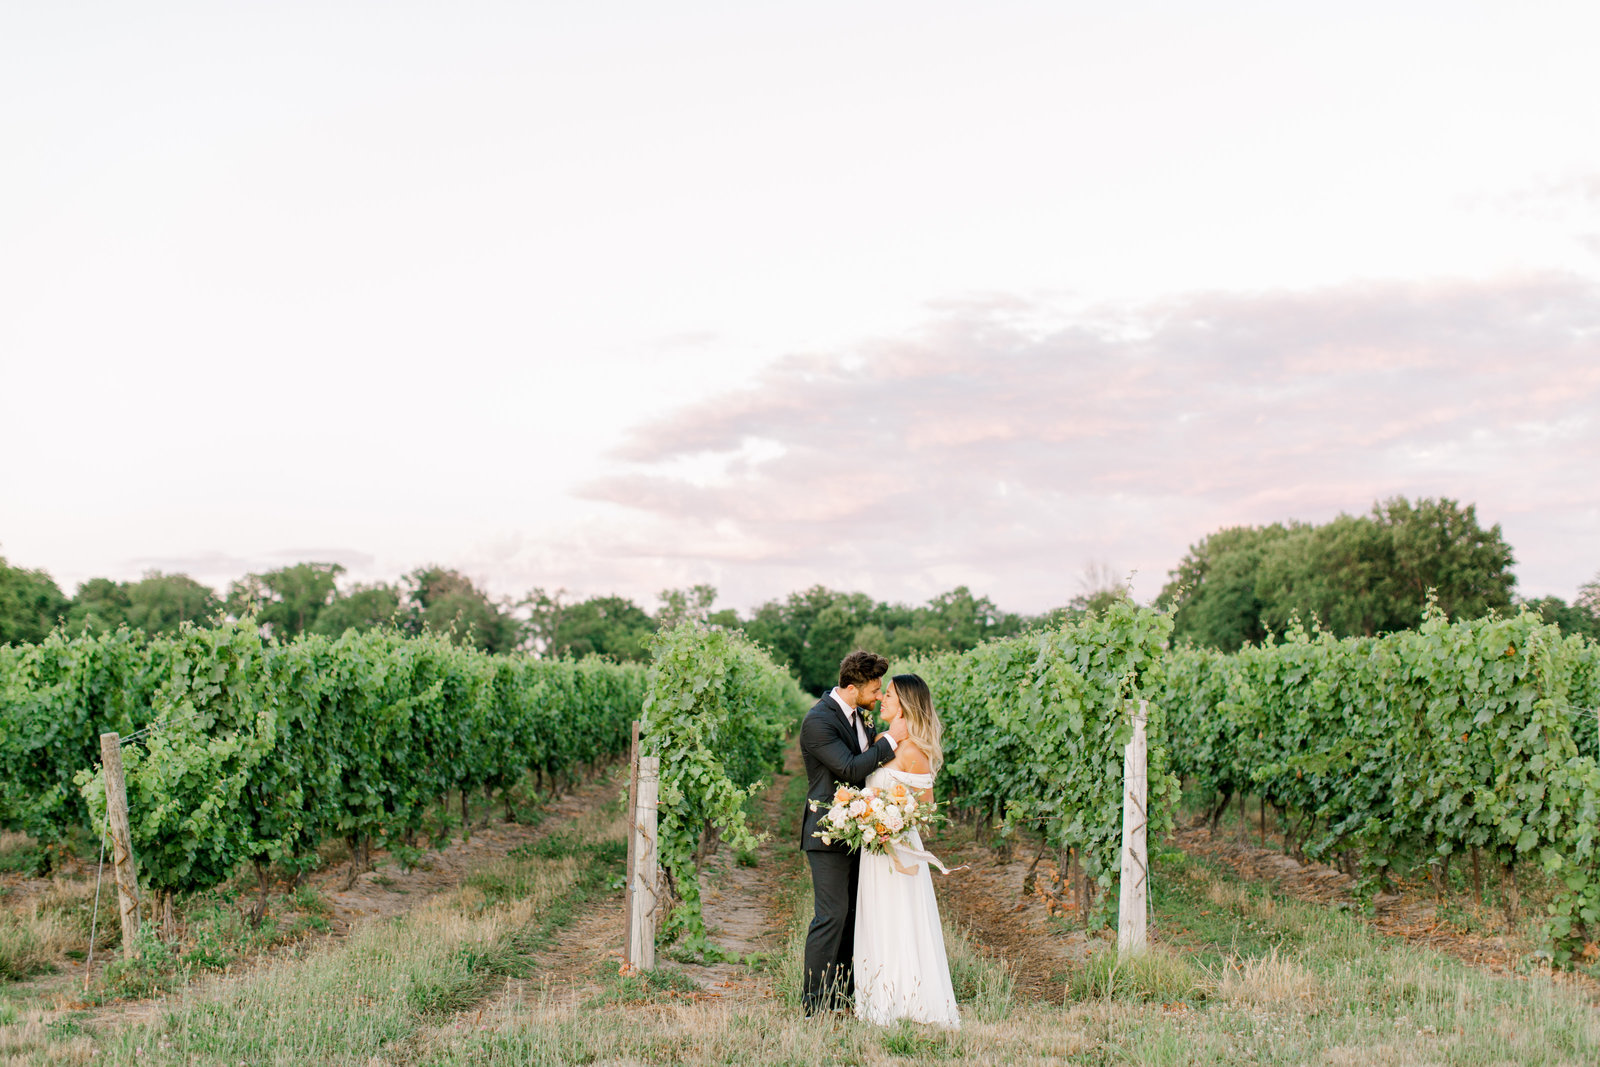 Jacqueline James Photography | Jacqueline James and Braden Gracewood Estates Vineyard Kurtz Orchard Winery Niagara Ontario Toronto Wedding Photographer